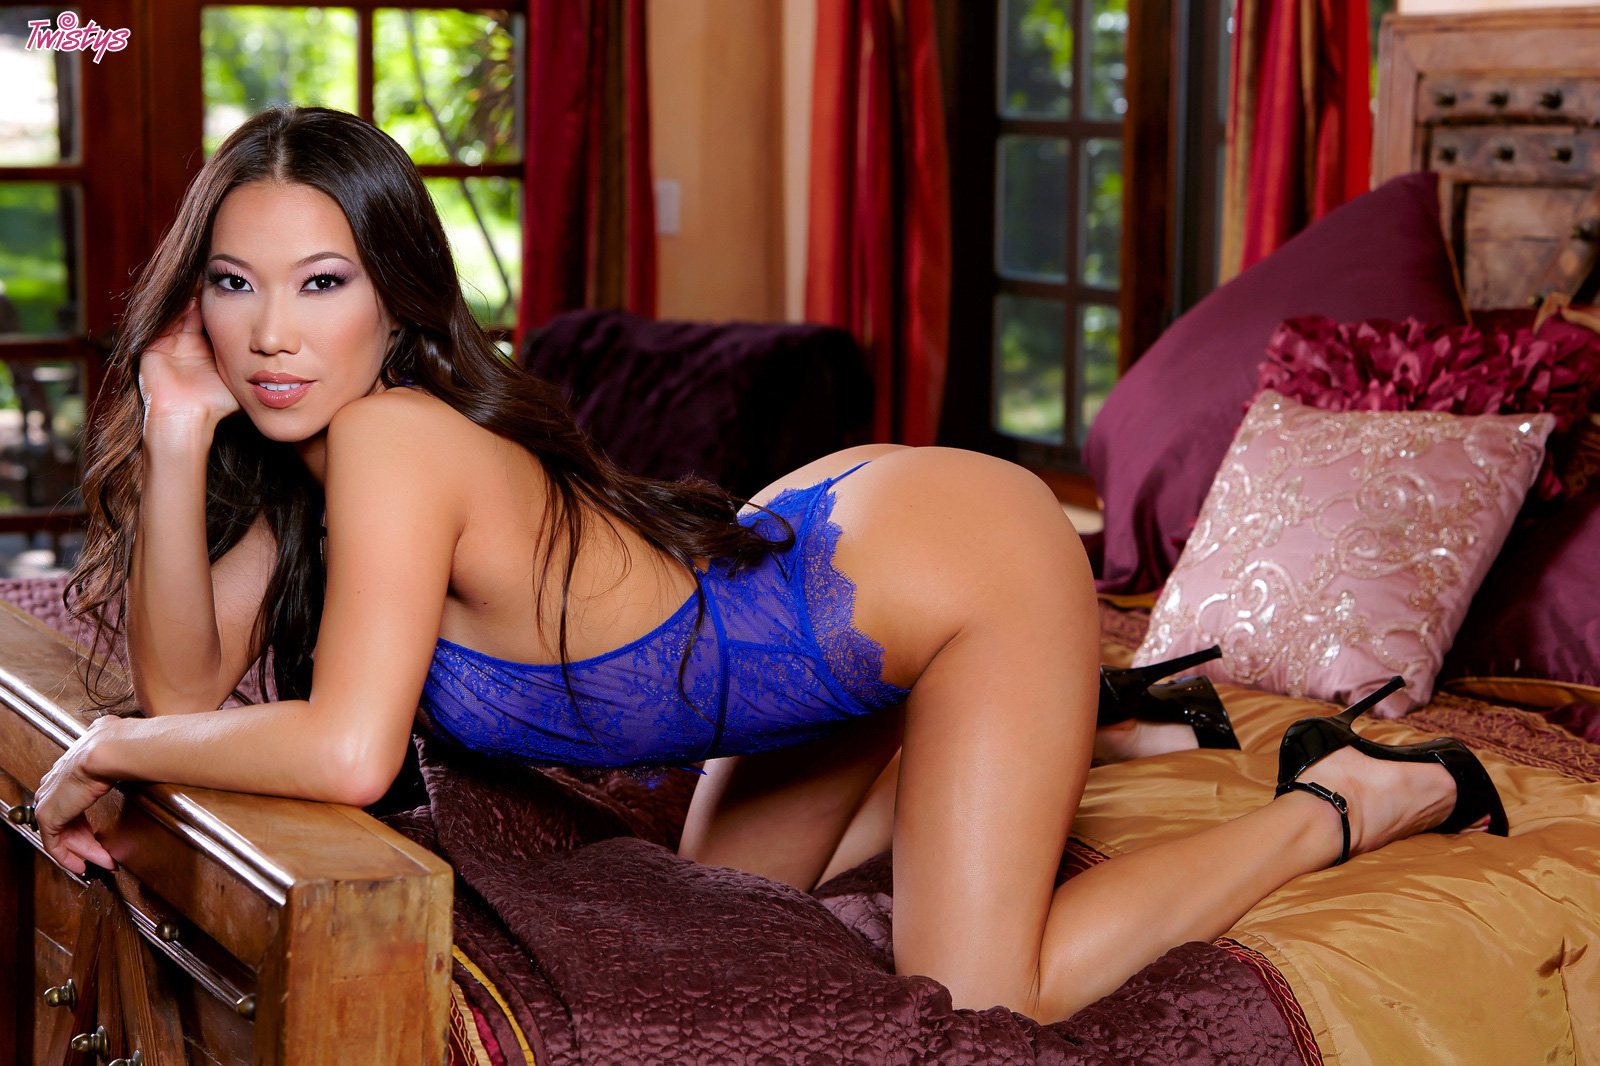 Big Girl Toy.. featuring Kalina Ryu | Twistys.com